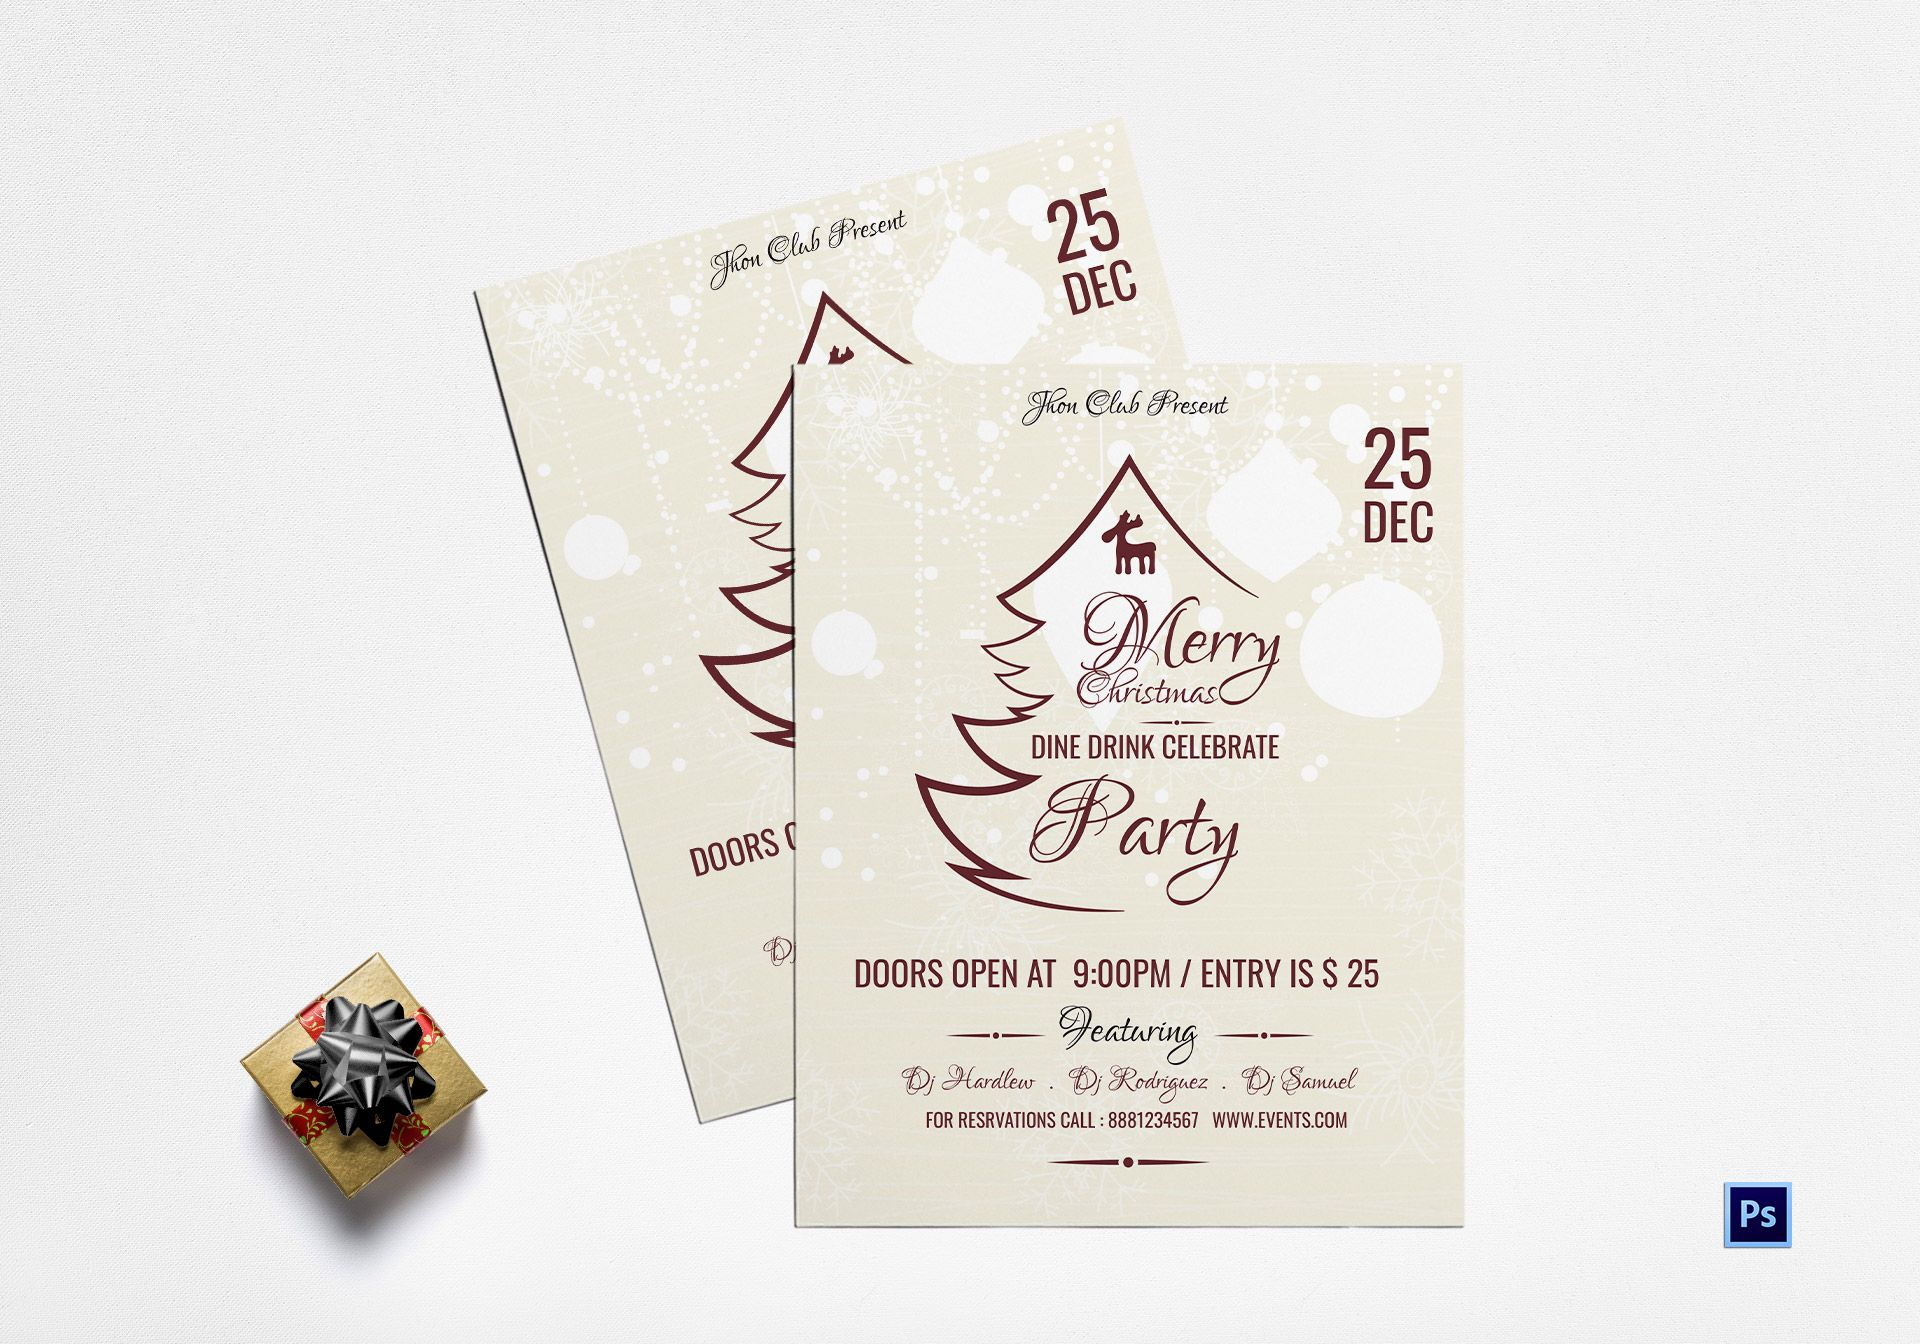 Merry Christmas Dine In Party Flyer